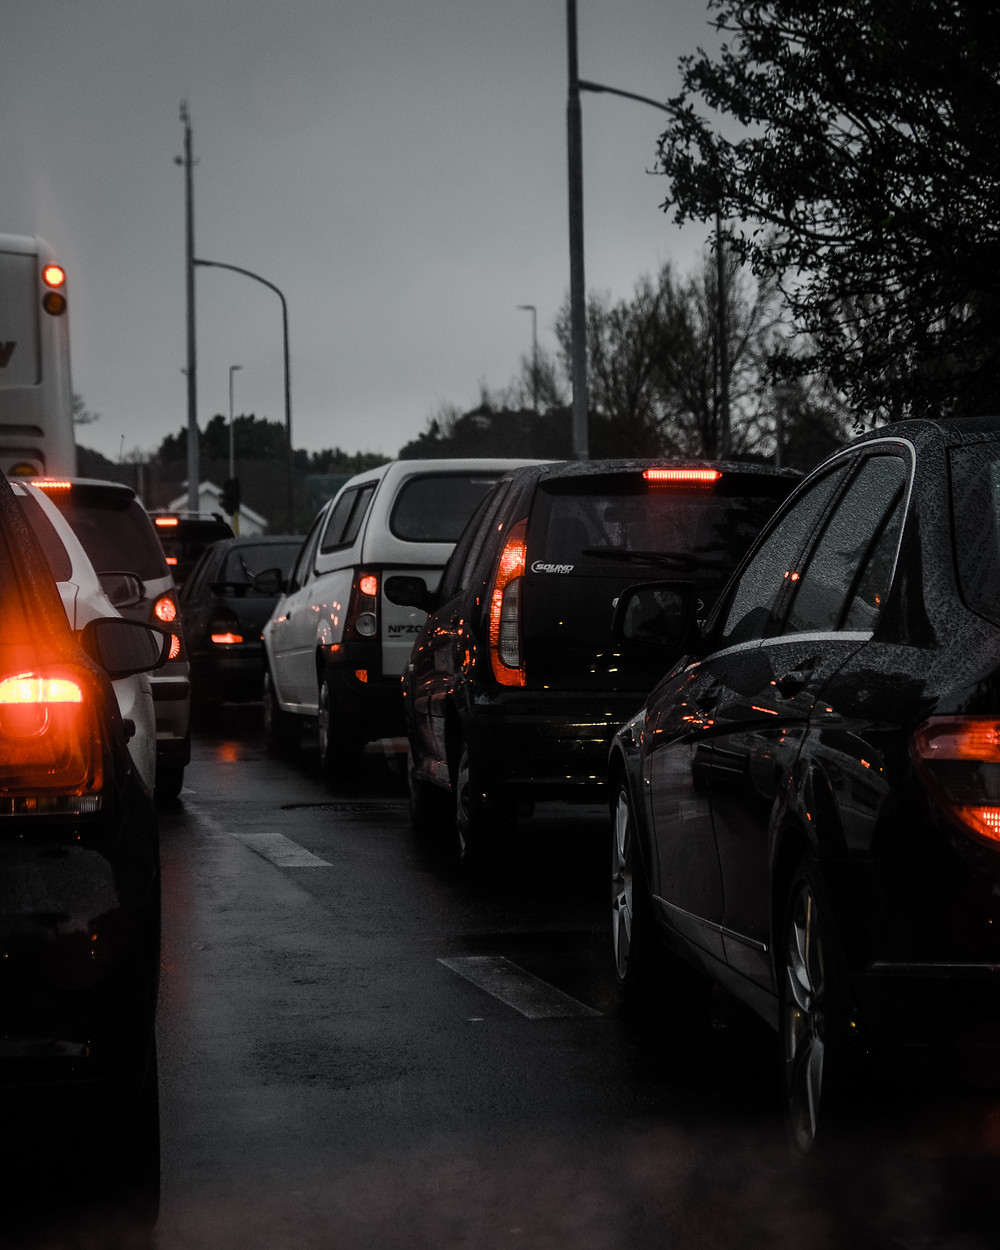 Solution to traffic jam? Close the road!